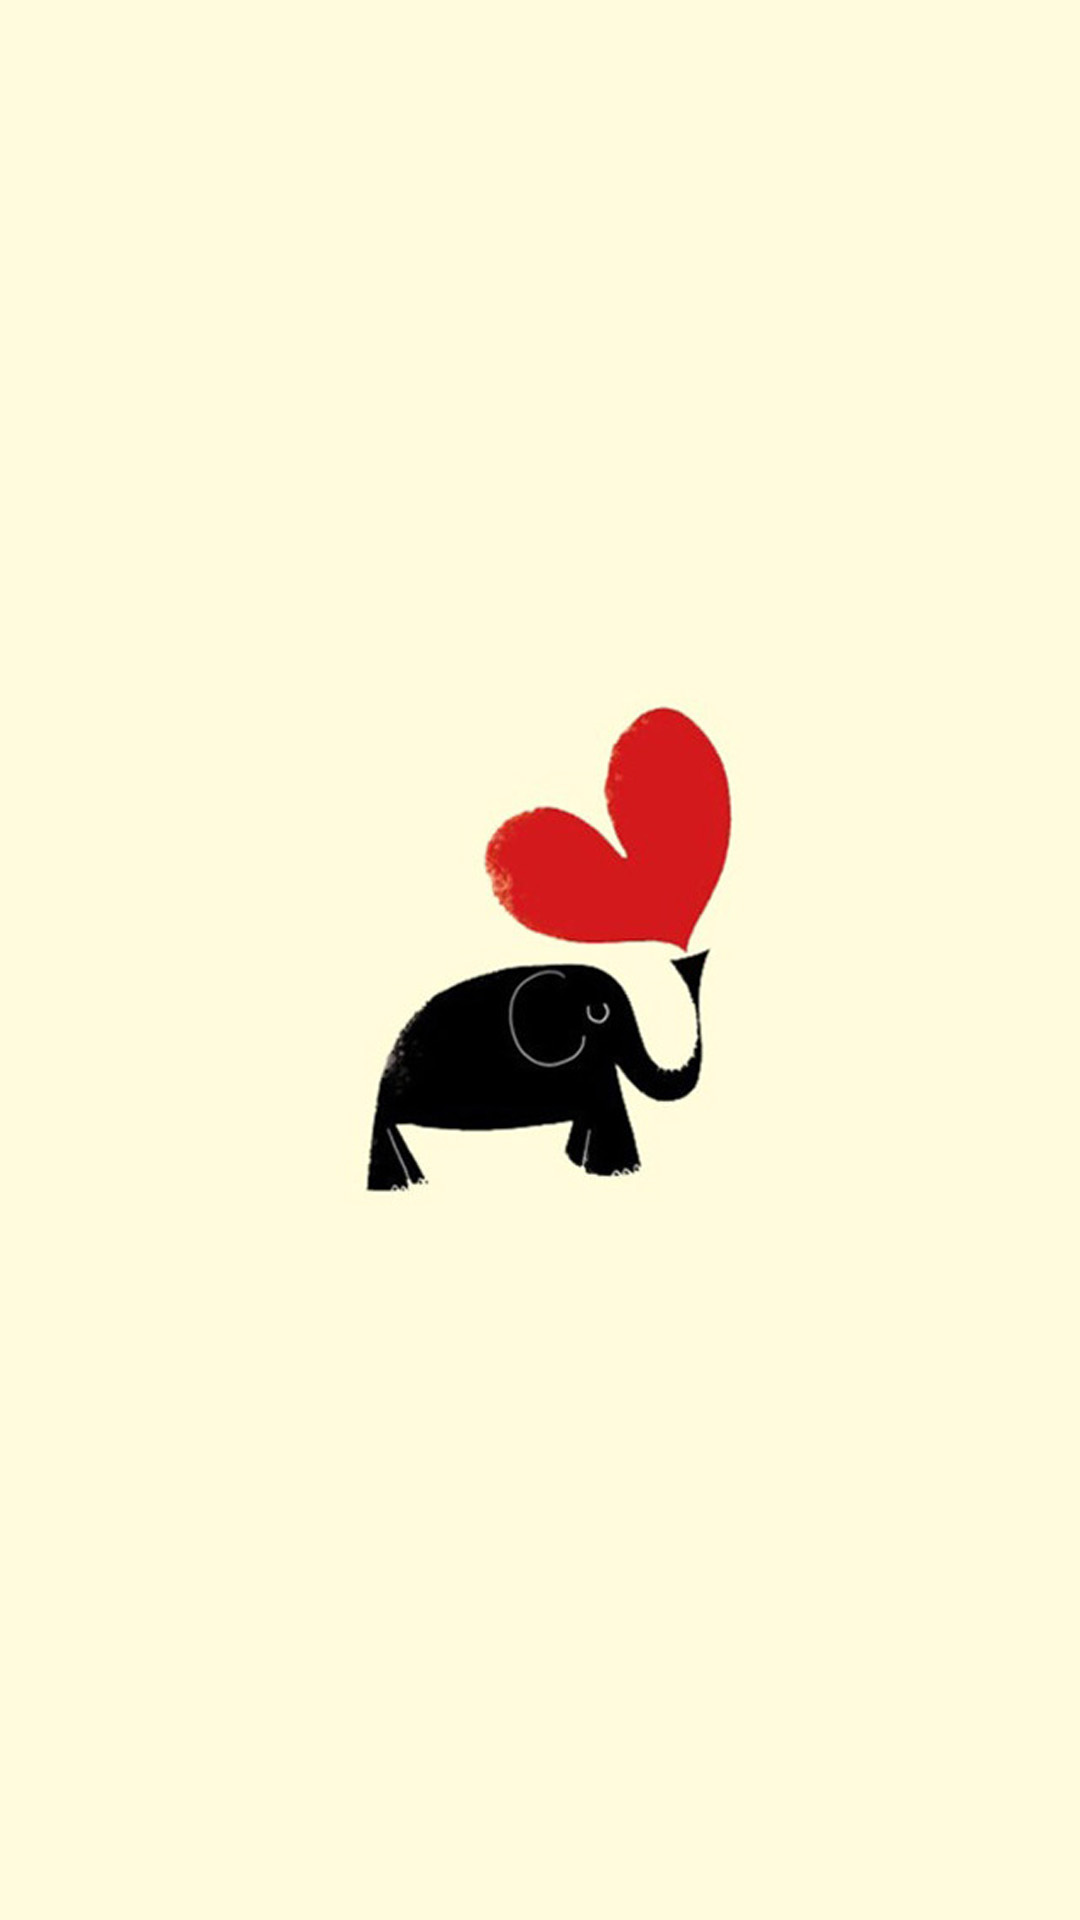 Cute Little Dark Elephant Red Love Heart Drawn Art Android Wallpaper